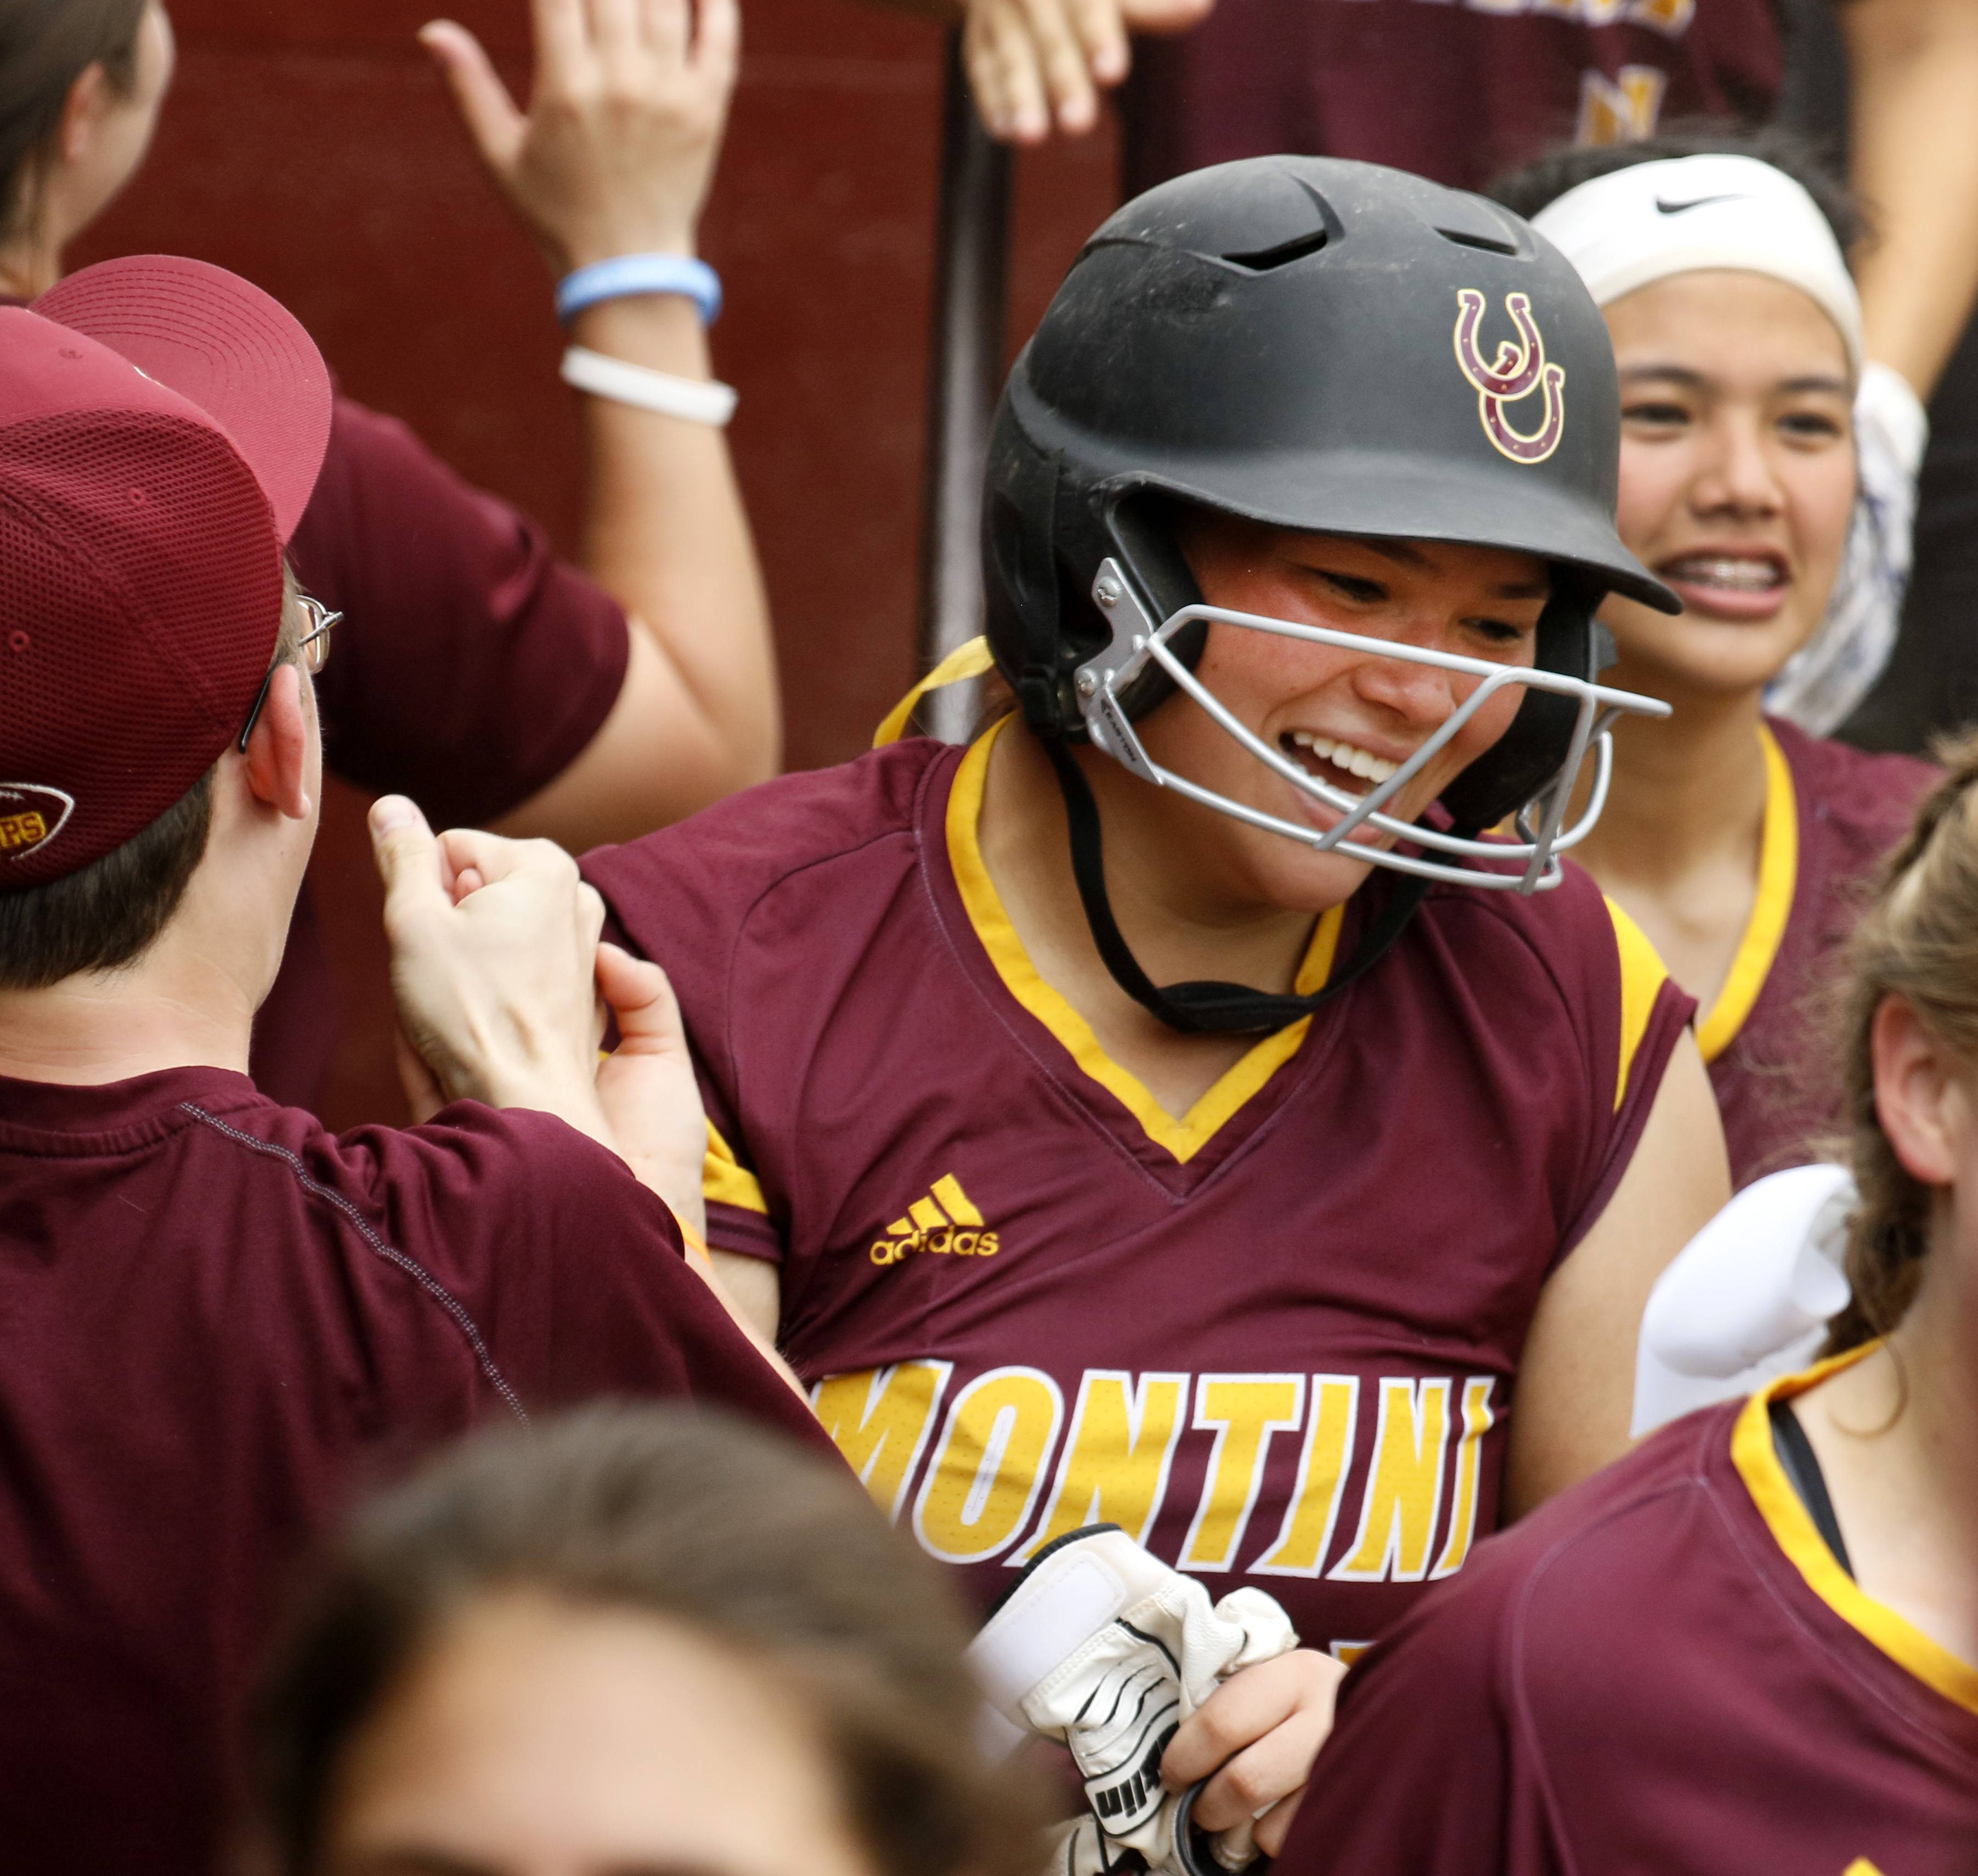 Montini Catholic's Nicole Cuchran is congratulated after hitting a home run against Kaneland during the IHSA Class 3A state softball championship.